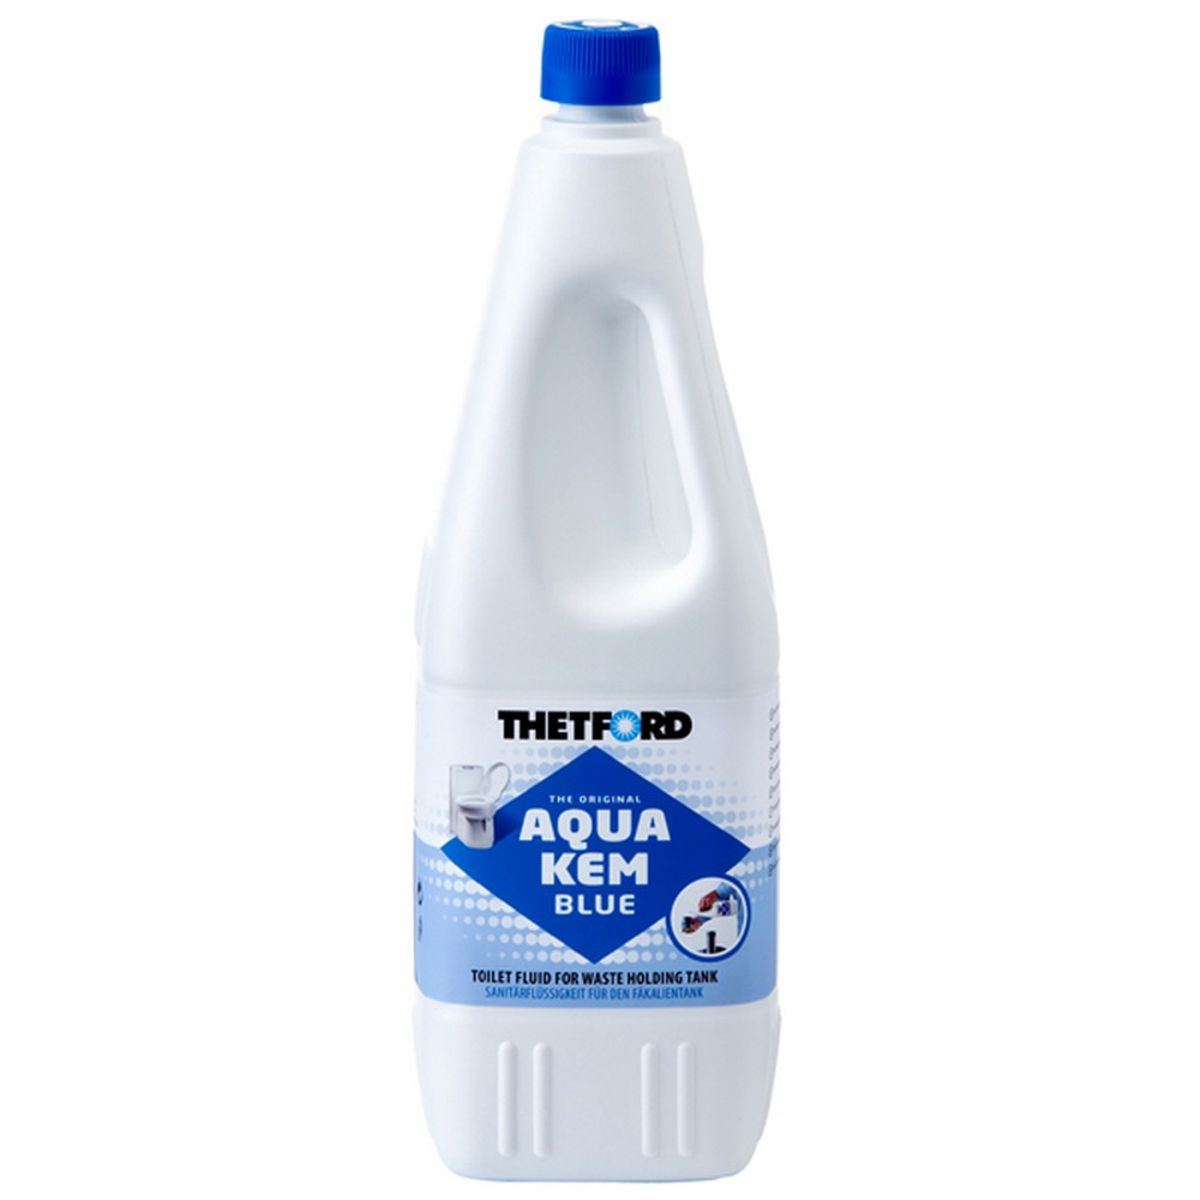 Aqua Kem Blue 2 Litre Bottle toilet chemicals